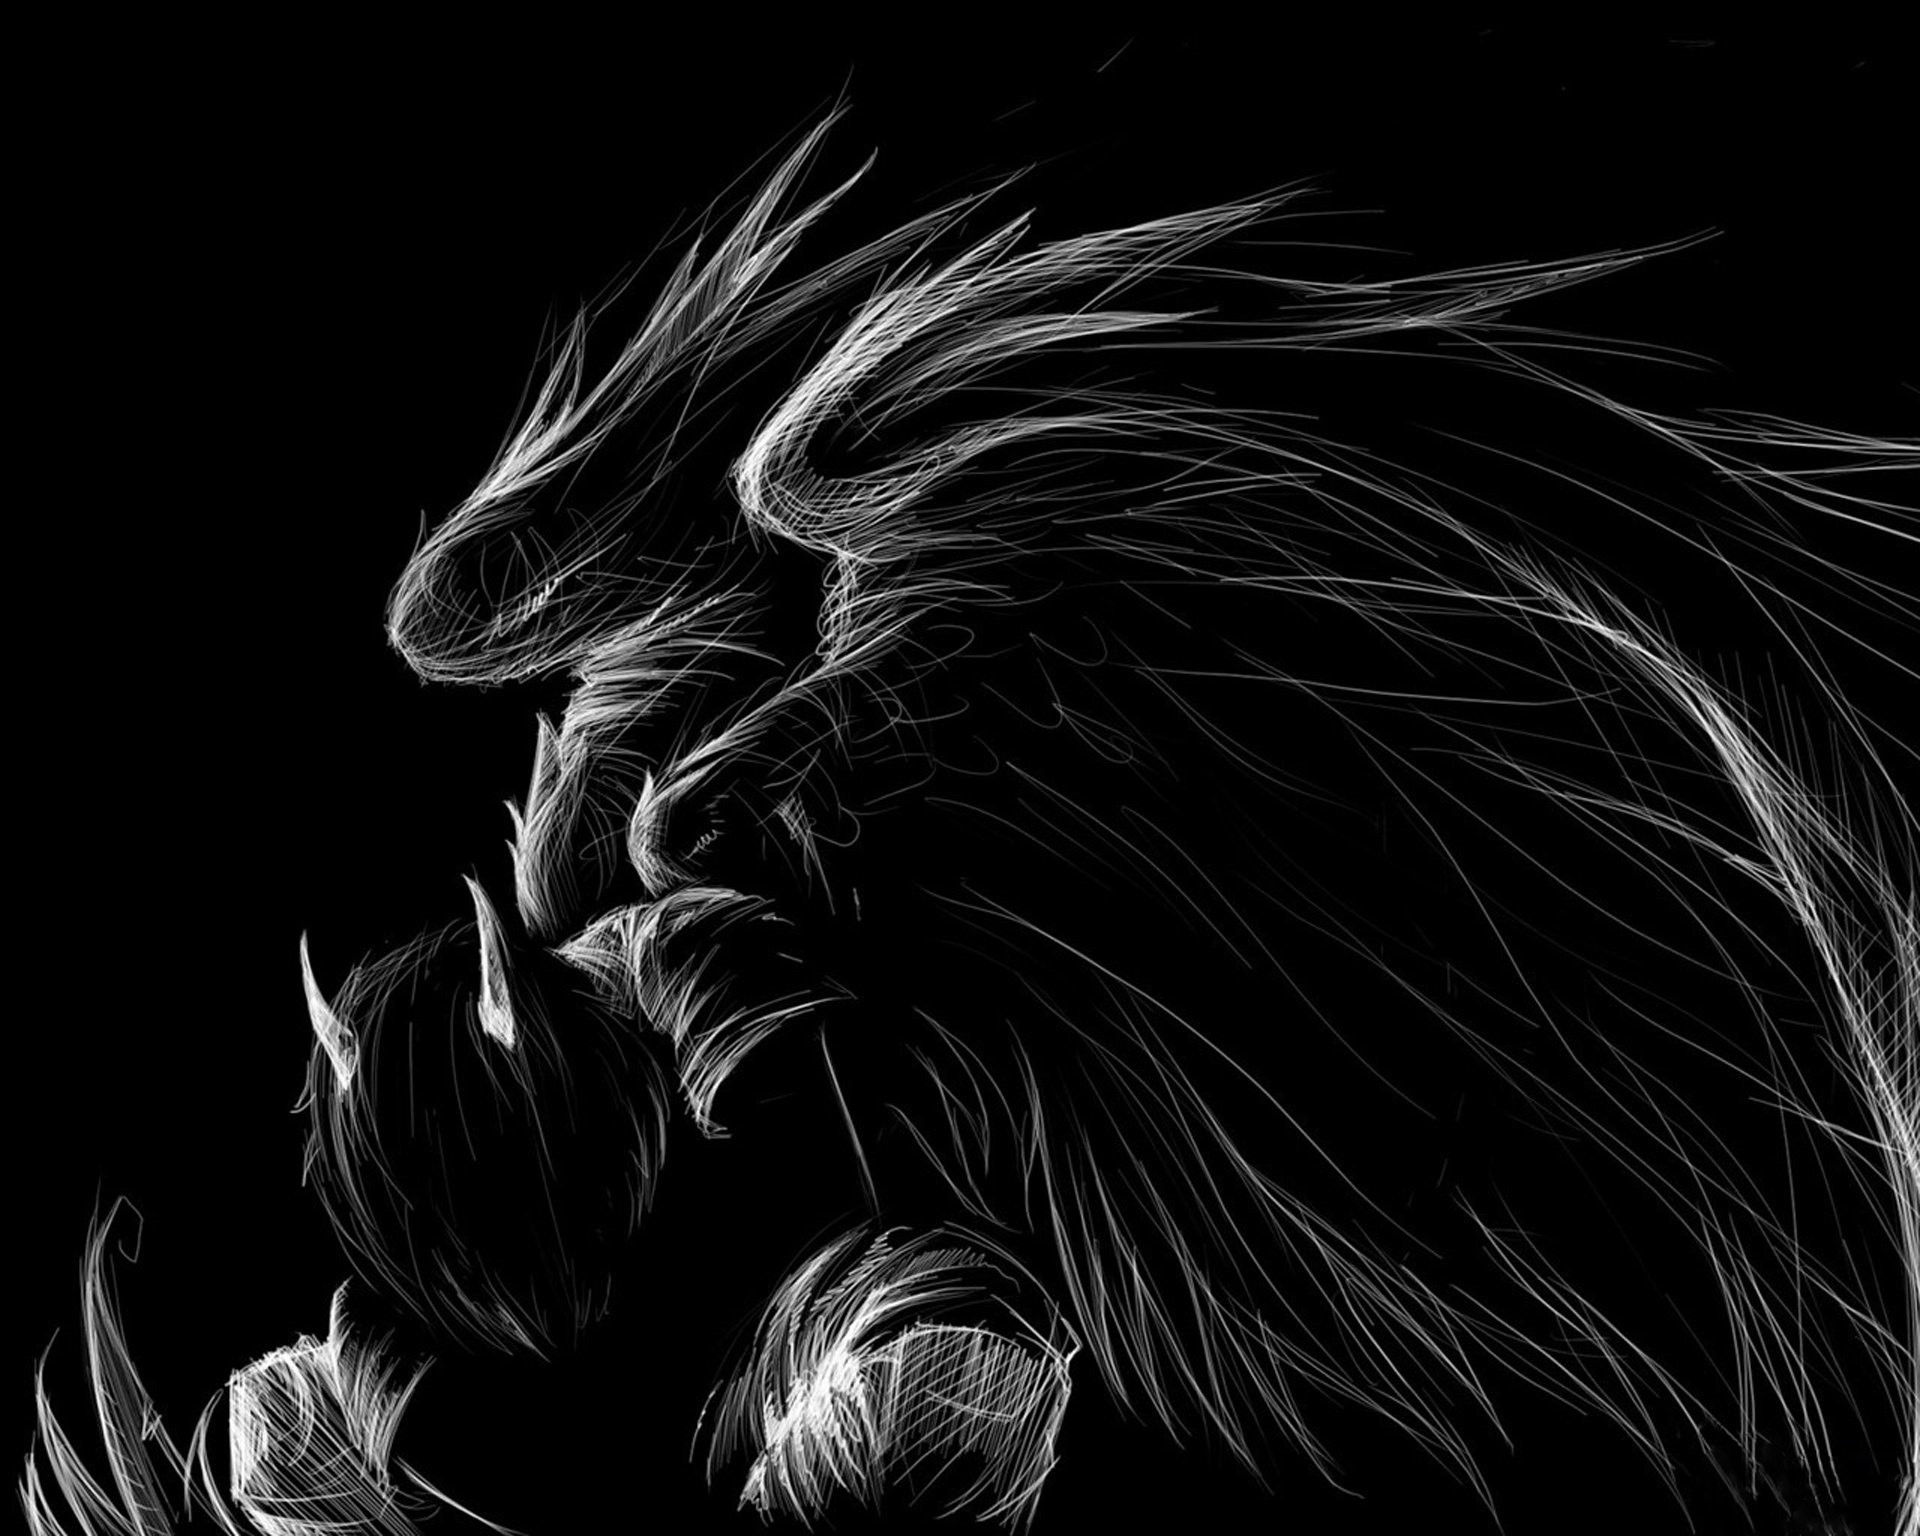 1920x1536 Black And White Wings Dark Angel Horns Wallpaper At Dark Wallpapers